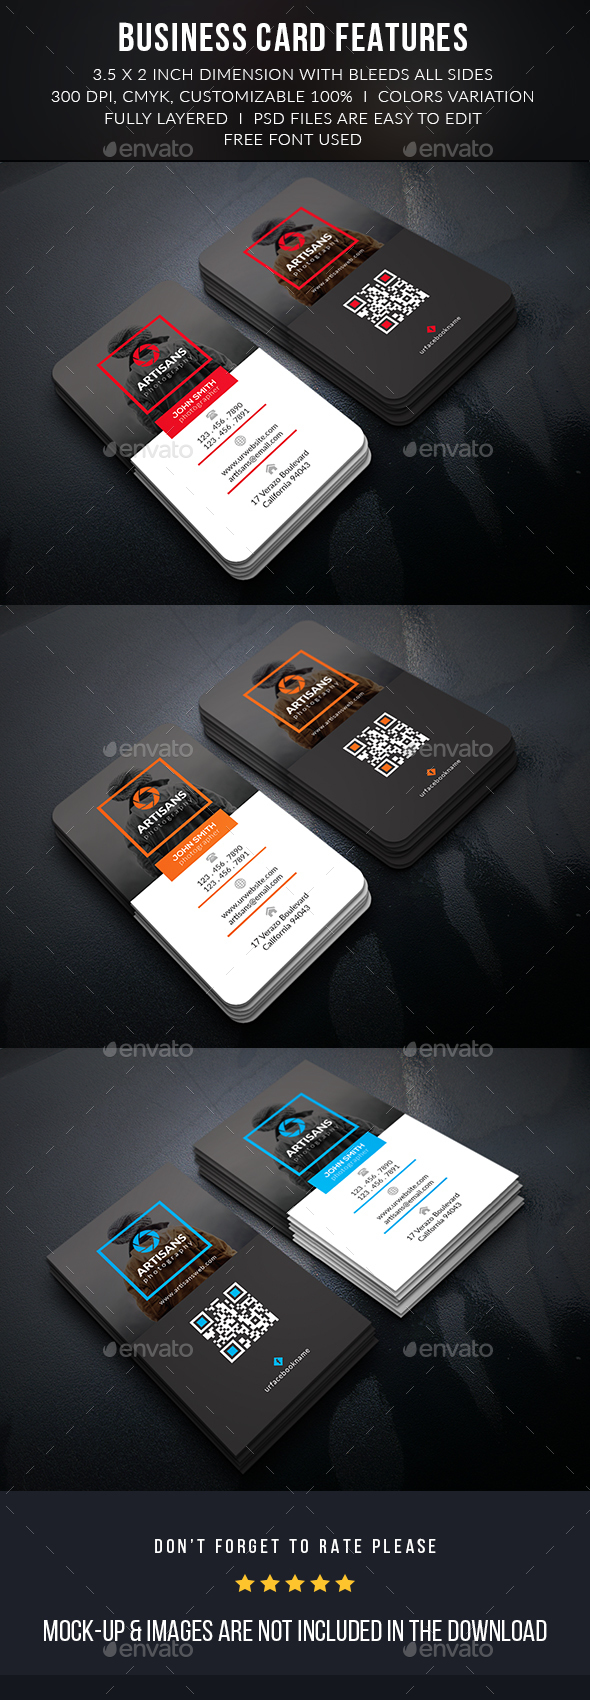 Creative Photographer Business Card - Business Cards Print Templates